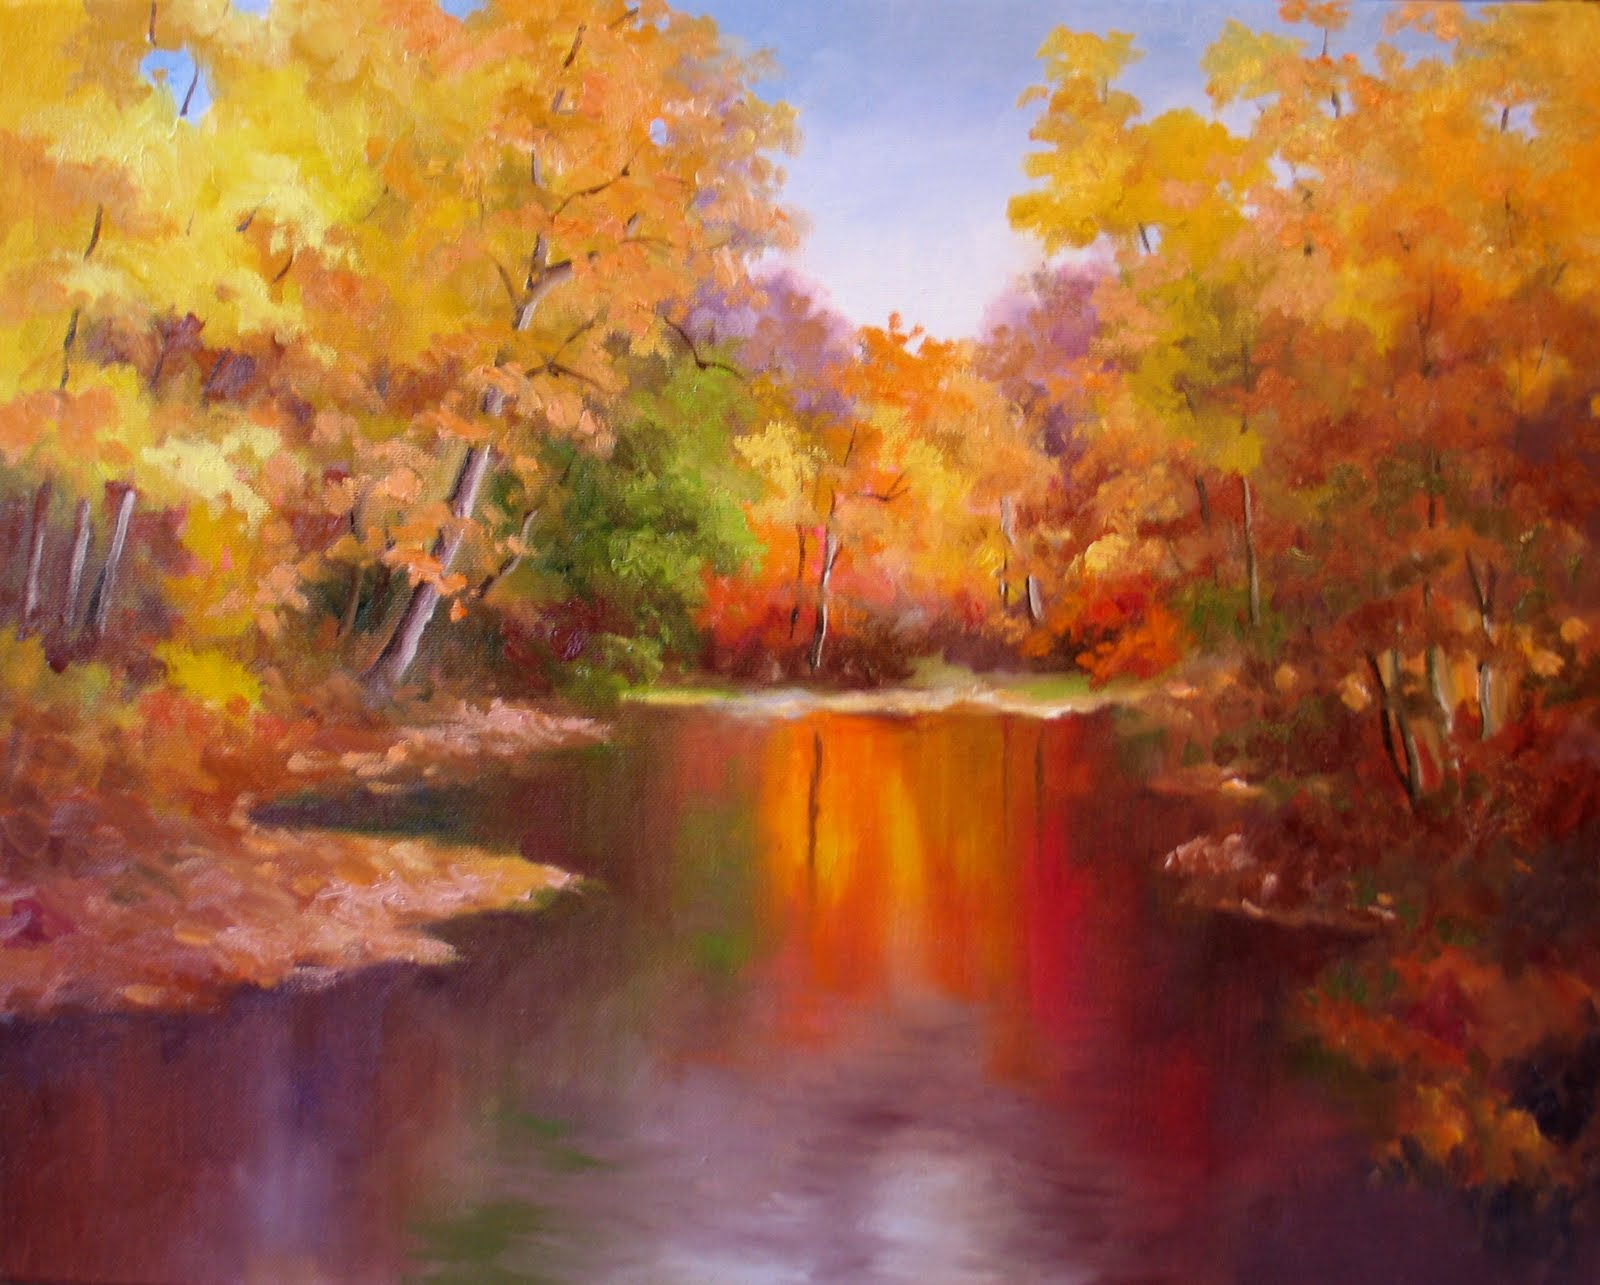 Nel 39 s everyday painting 3 6 11 3 13 11 for Fall pictures to paint